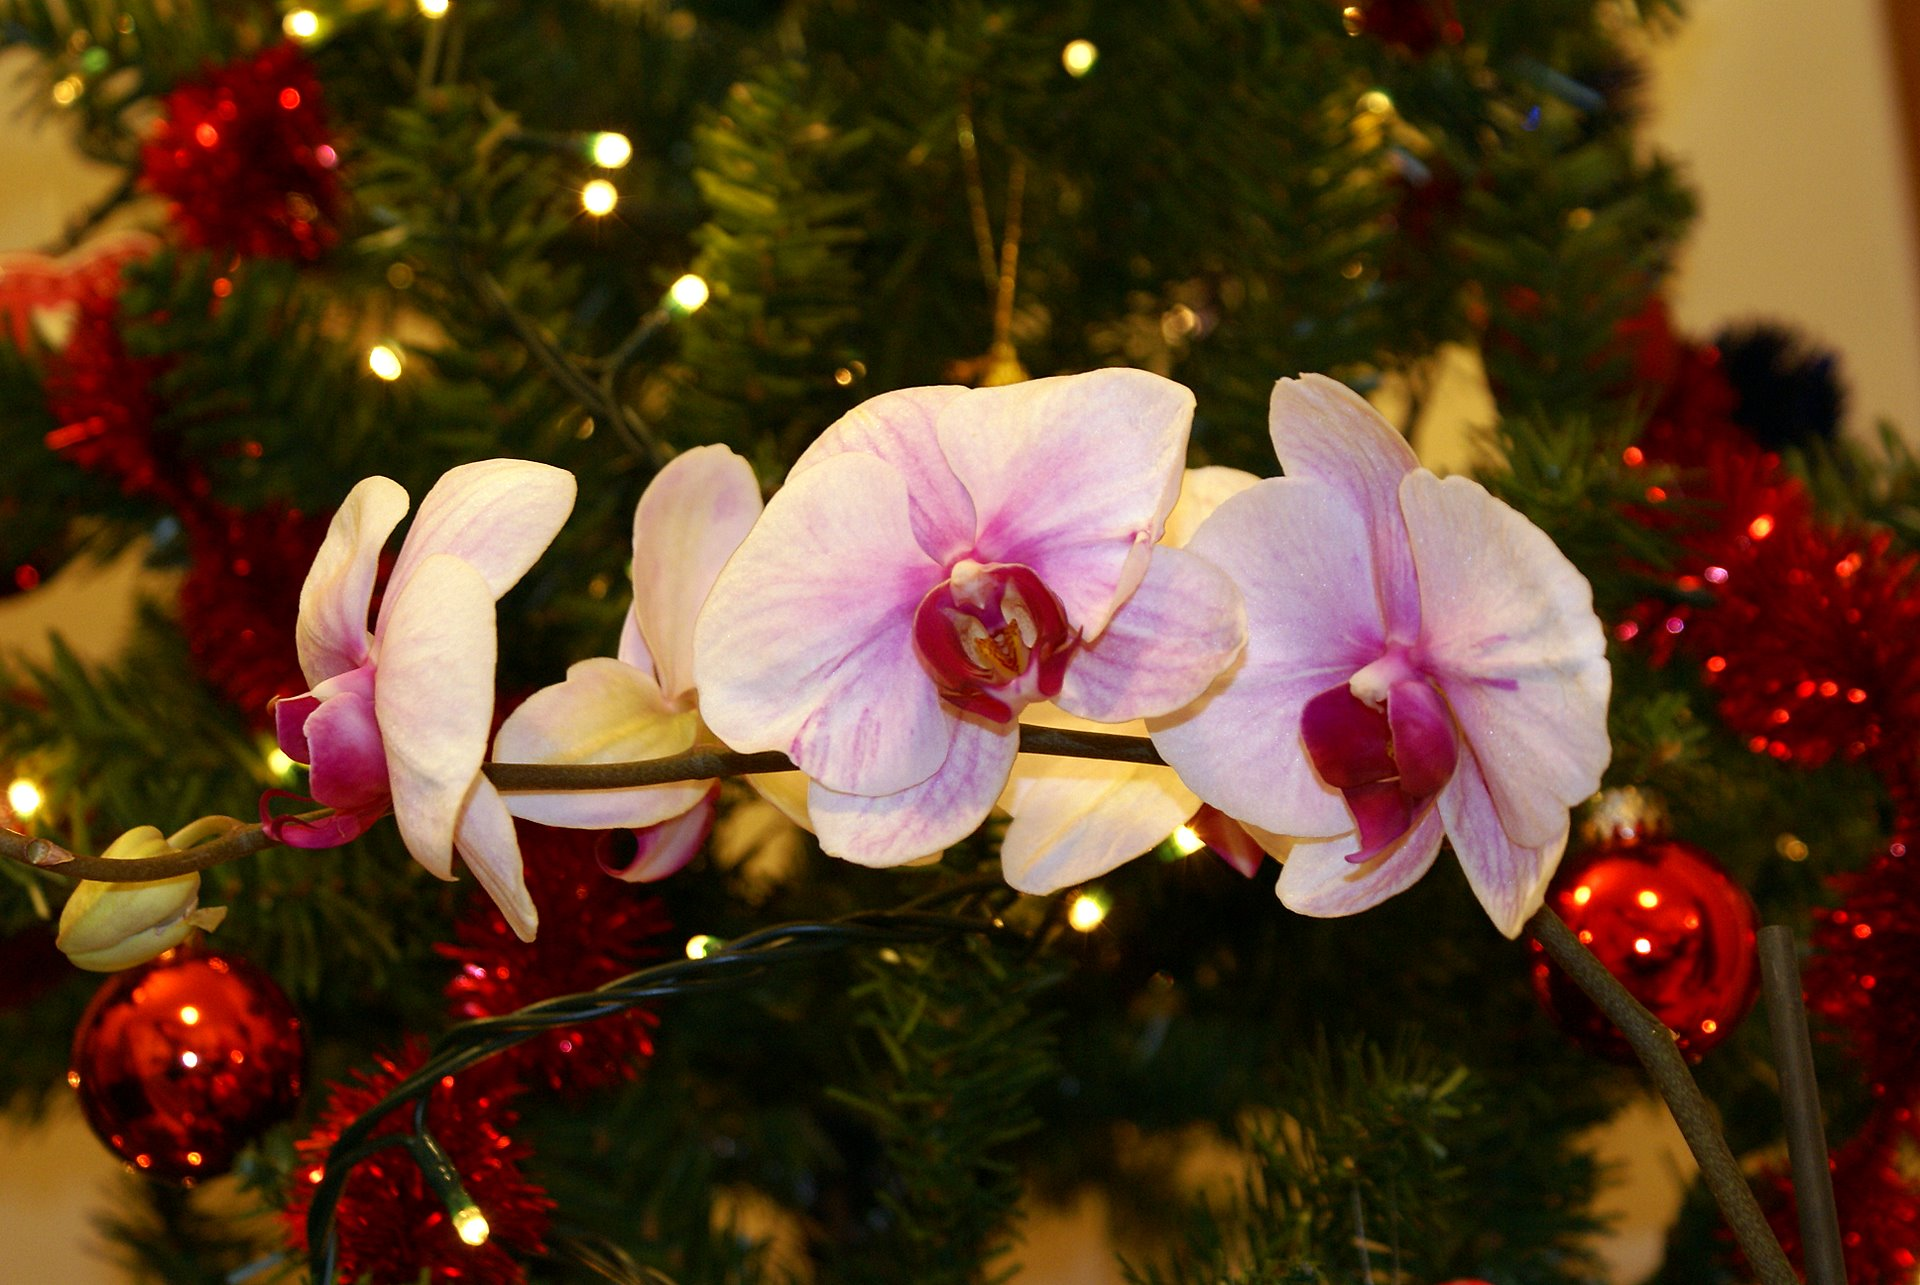 Orchids Near Christmas Tree